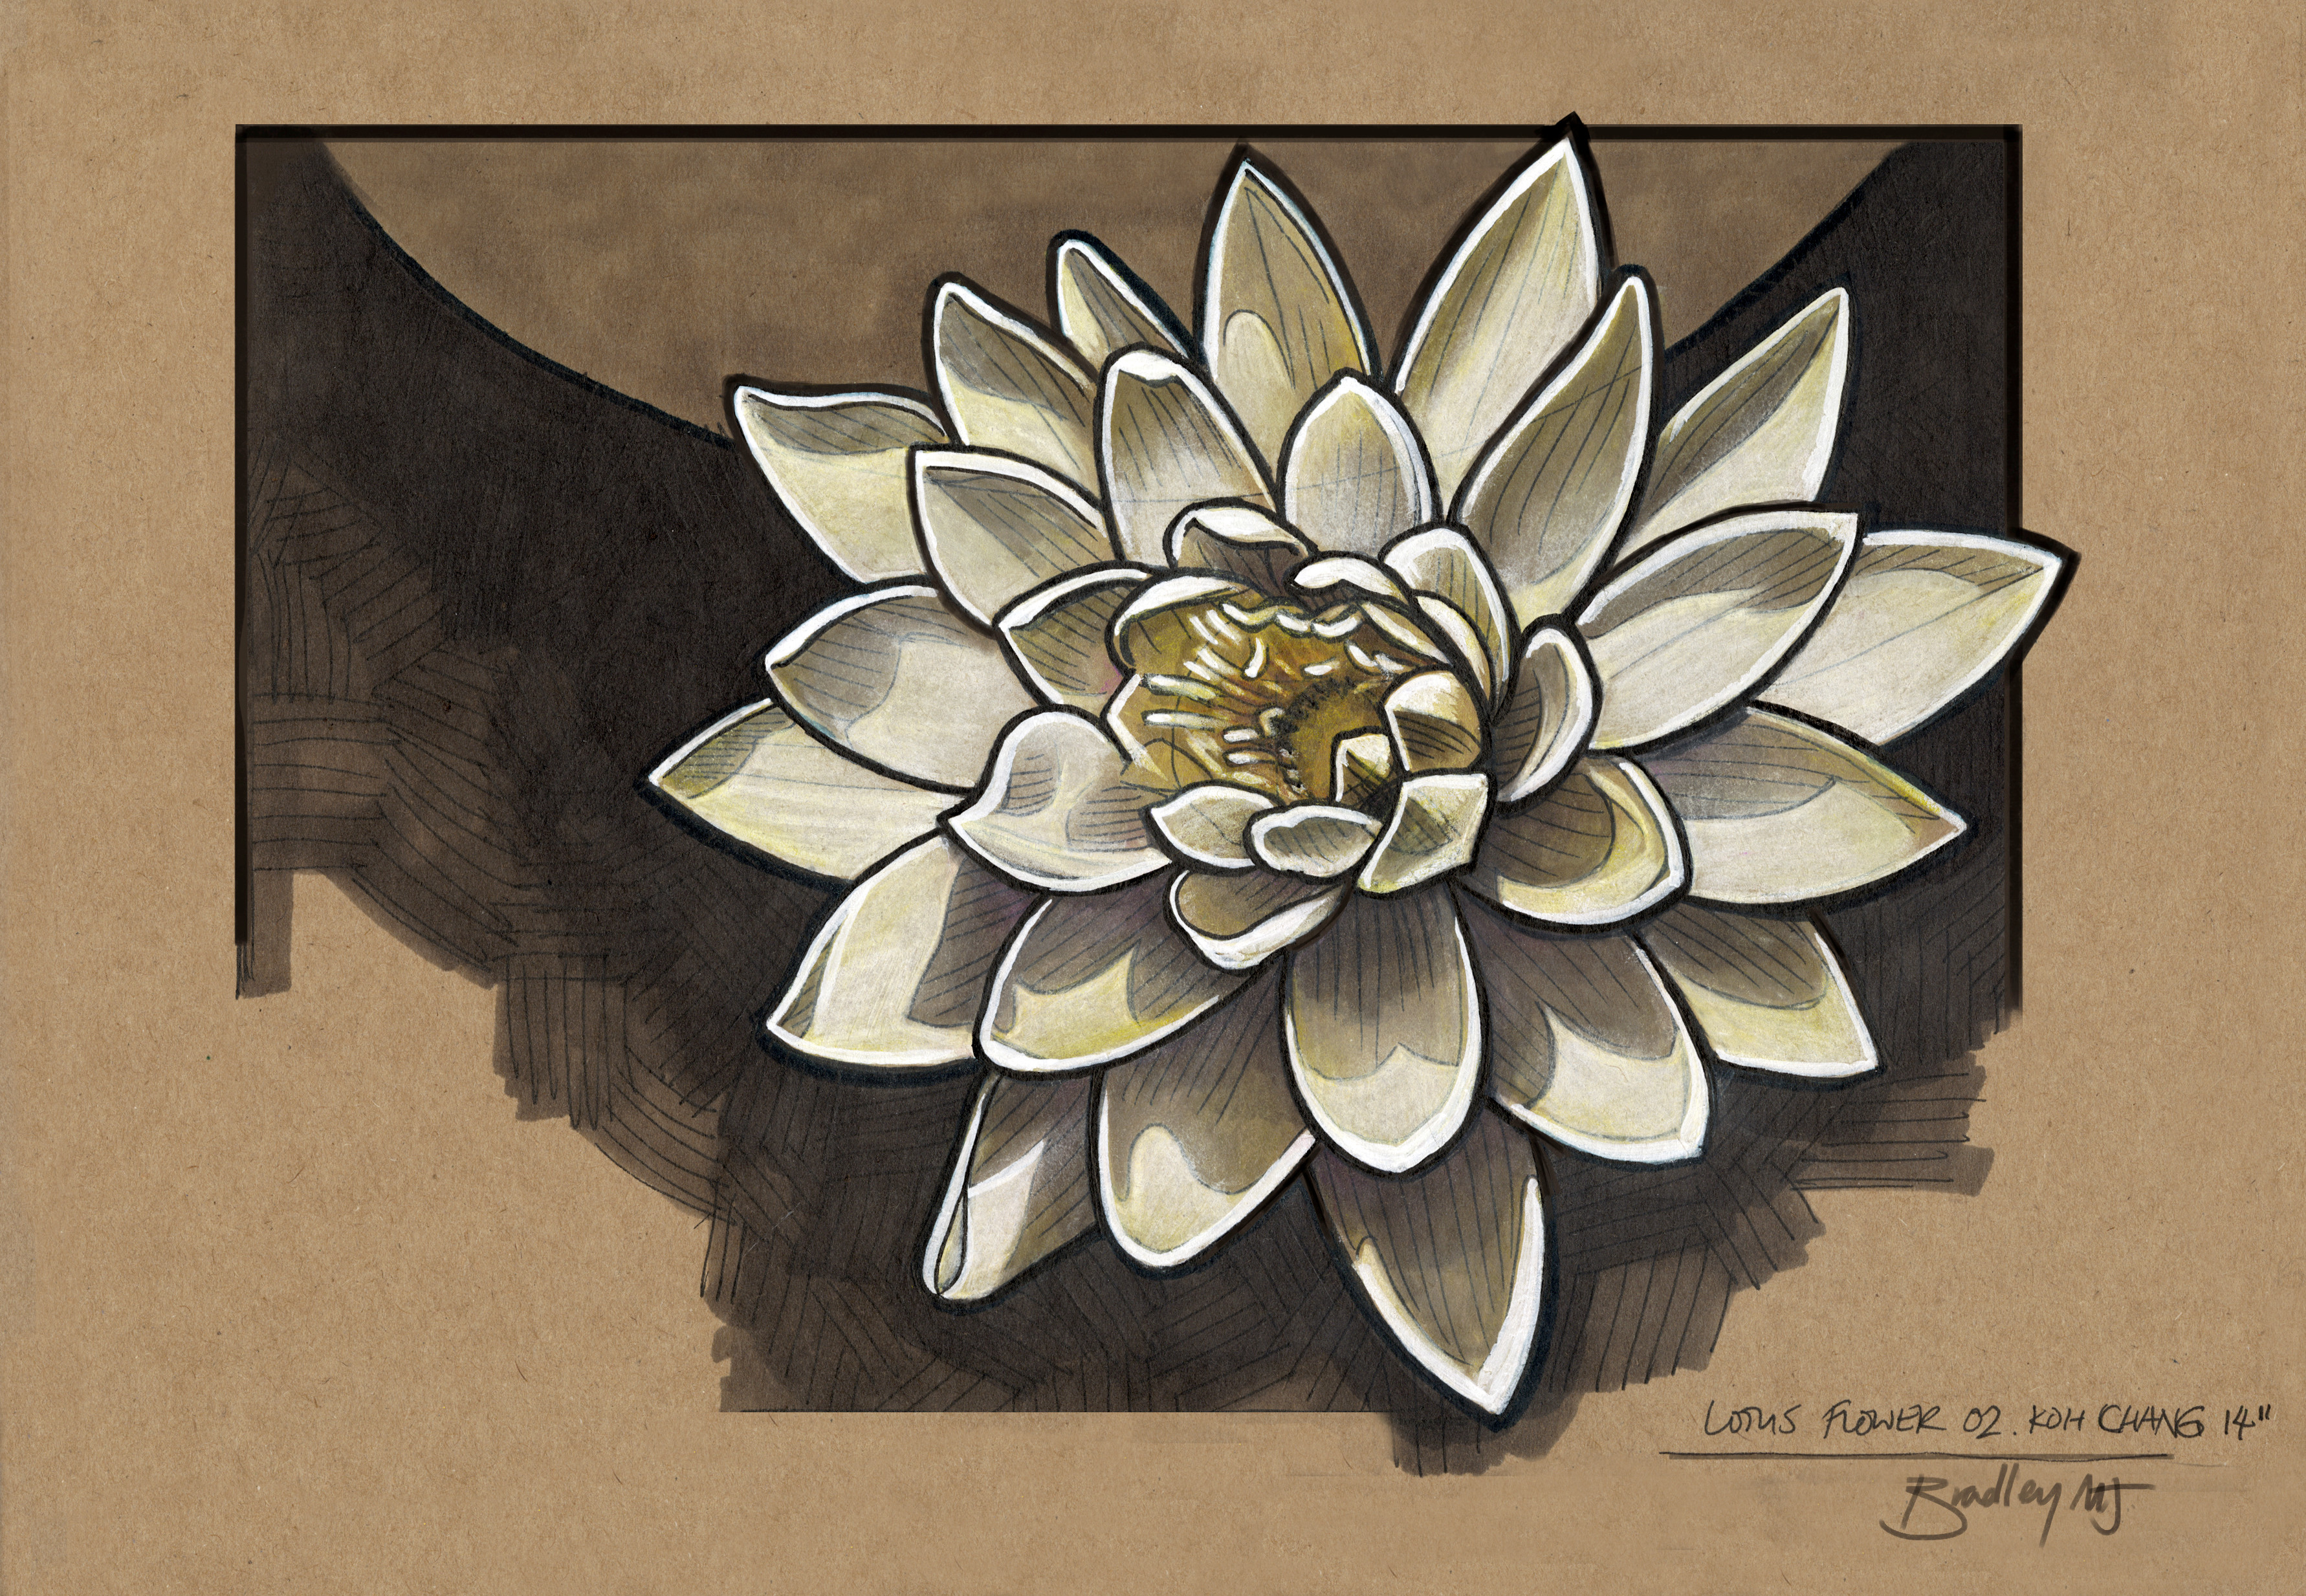 Lotus Flower Study from life, finished in studio